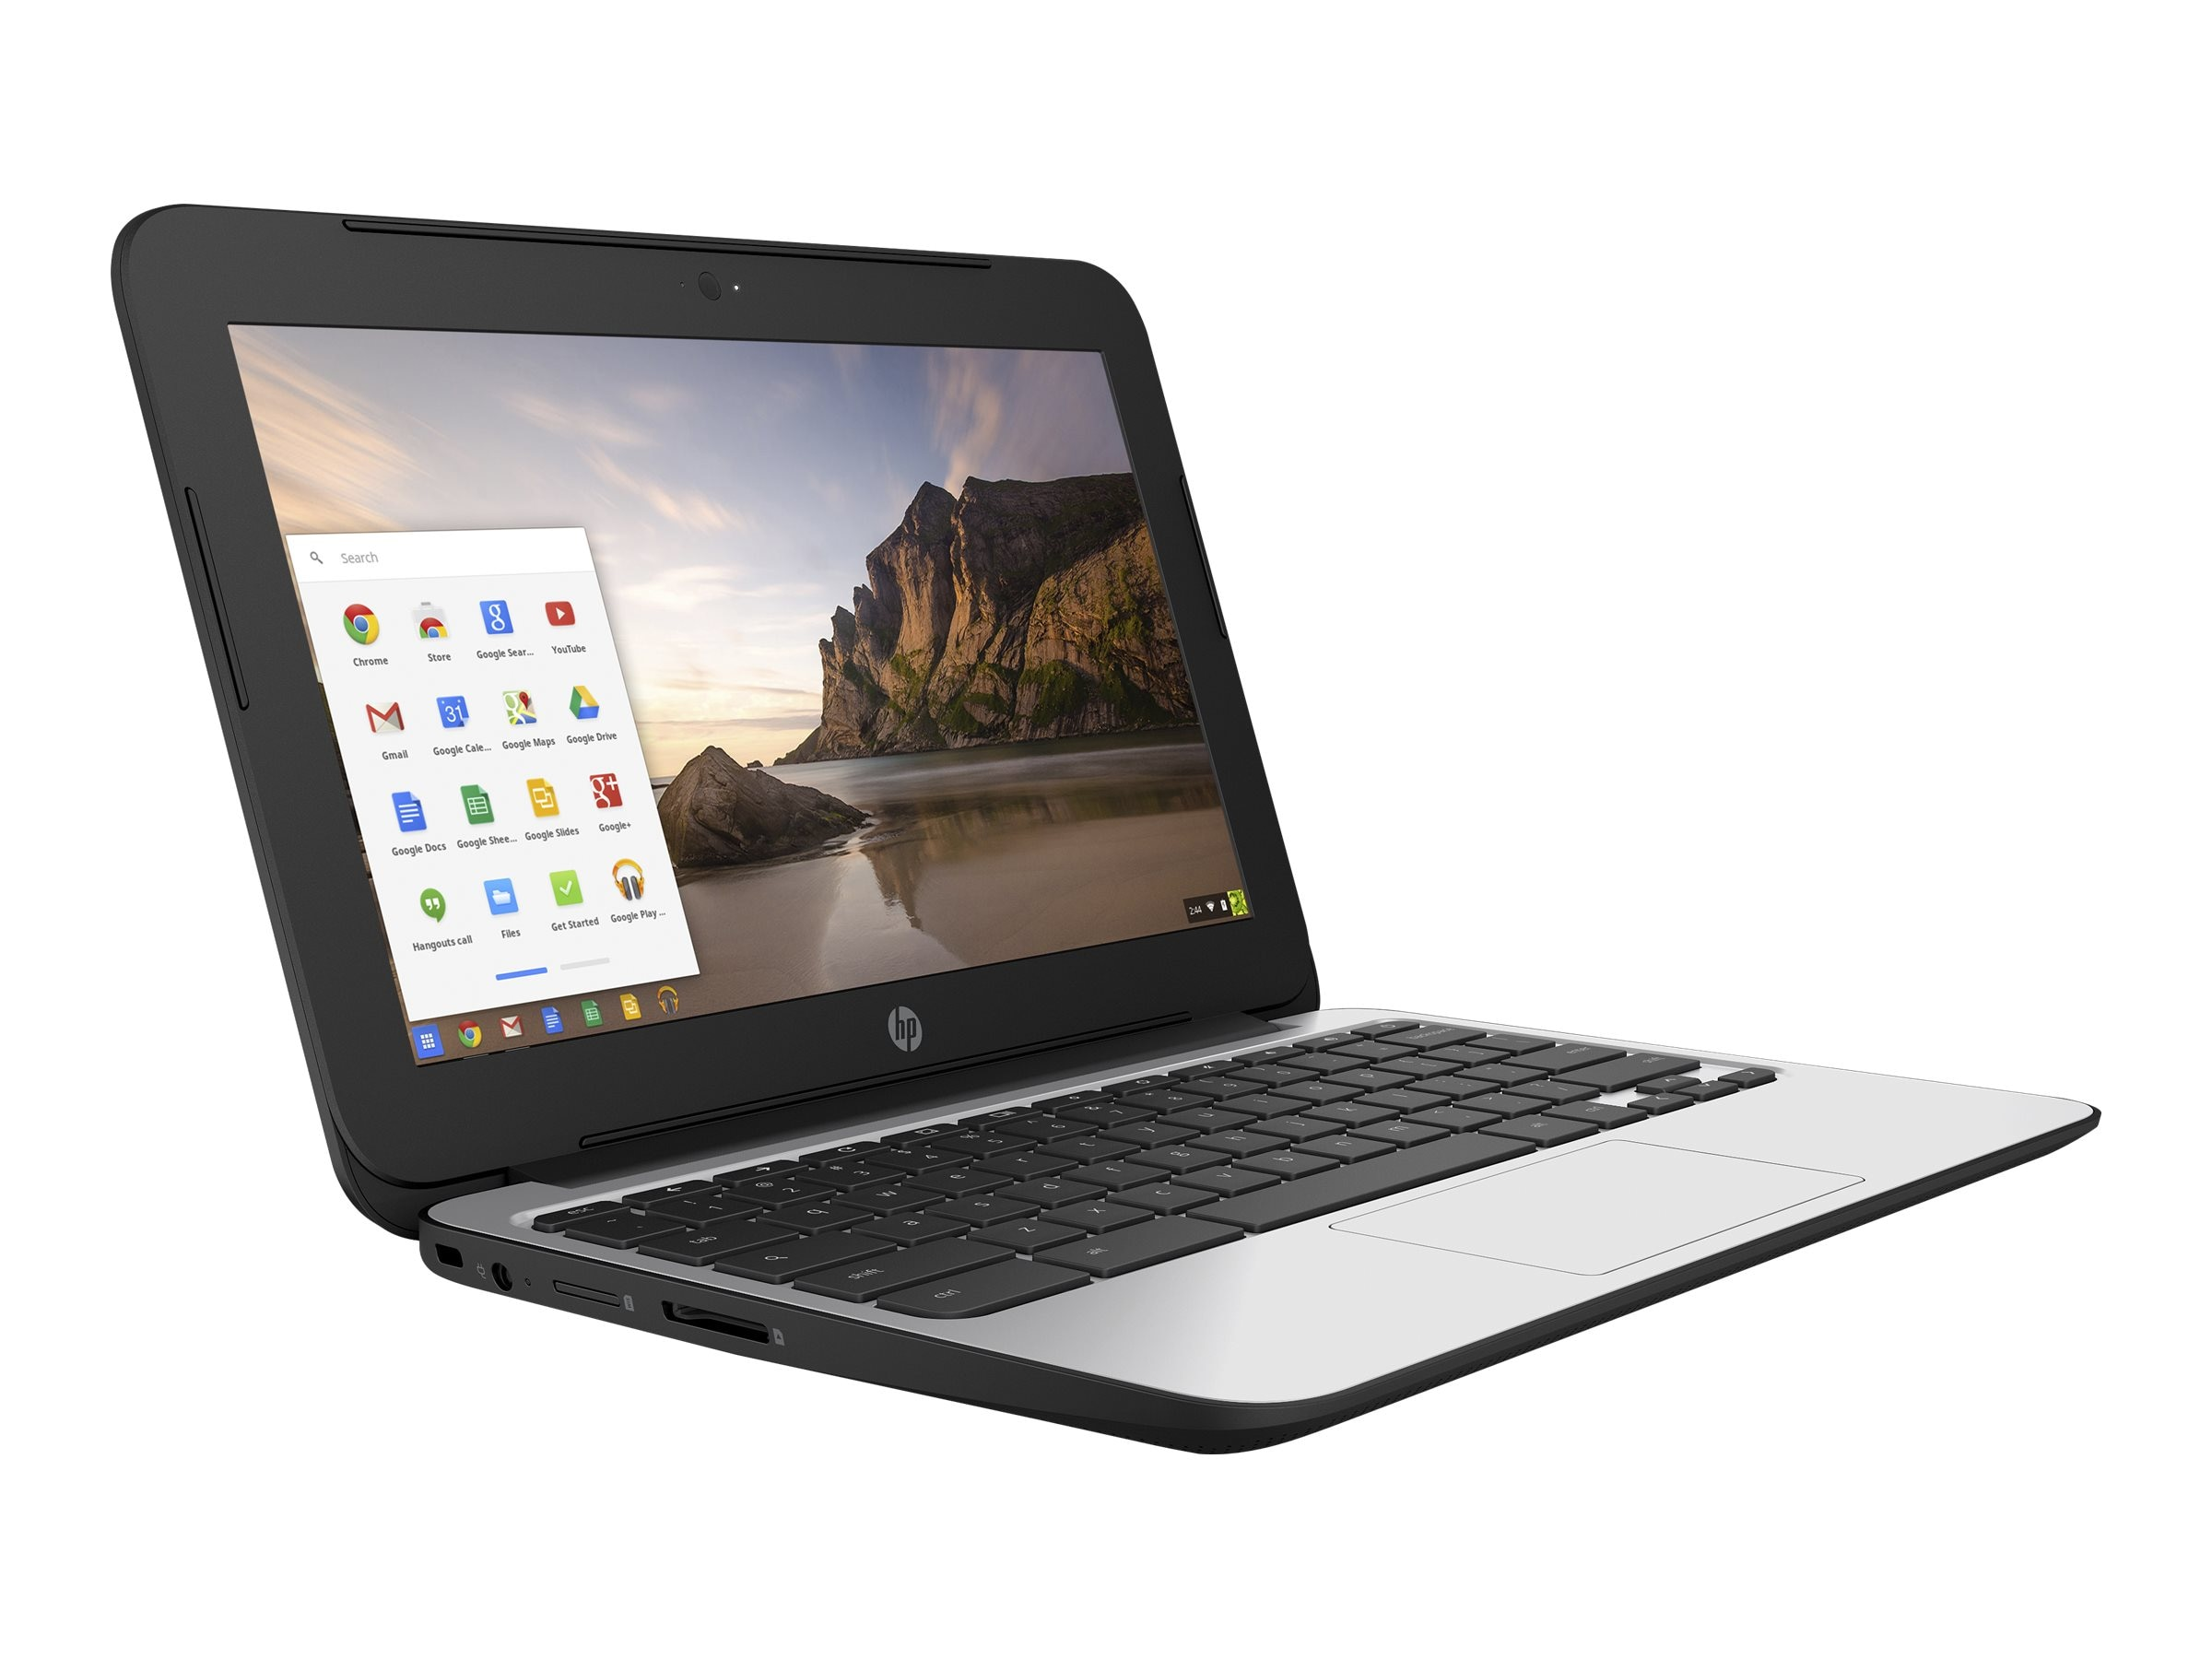 Open Box HP Chromebook 11 G4 Celeron N2840 2.16GHz 4GB 16GB ac abgn BT WC 3C 11.6 HD Chrome, P0B78UT#ABA